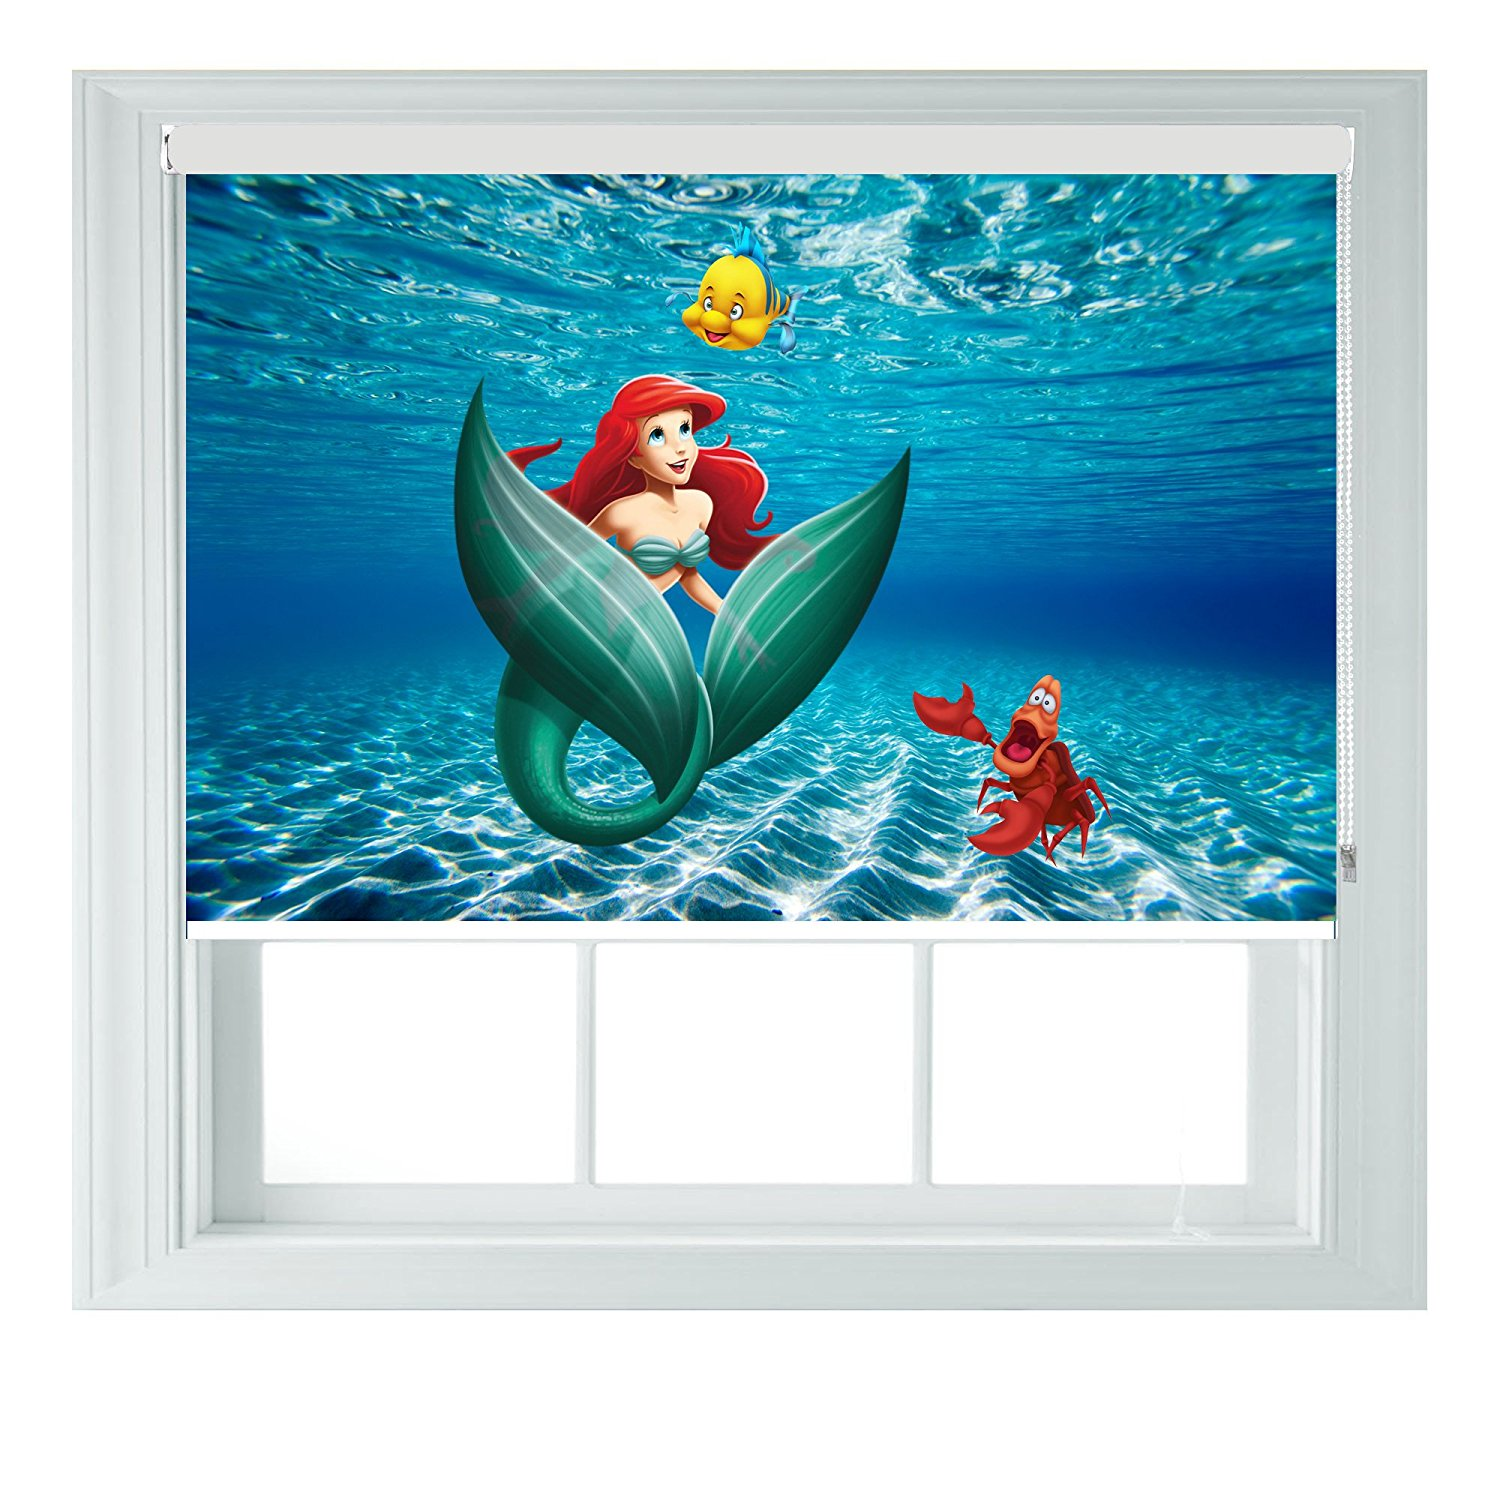 AOA The Little Mermaid Roller Blinds